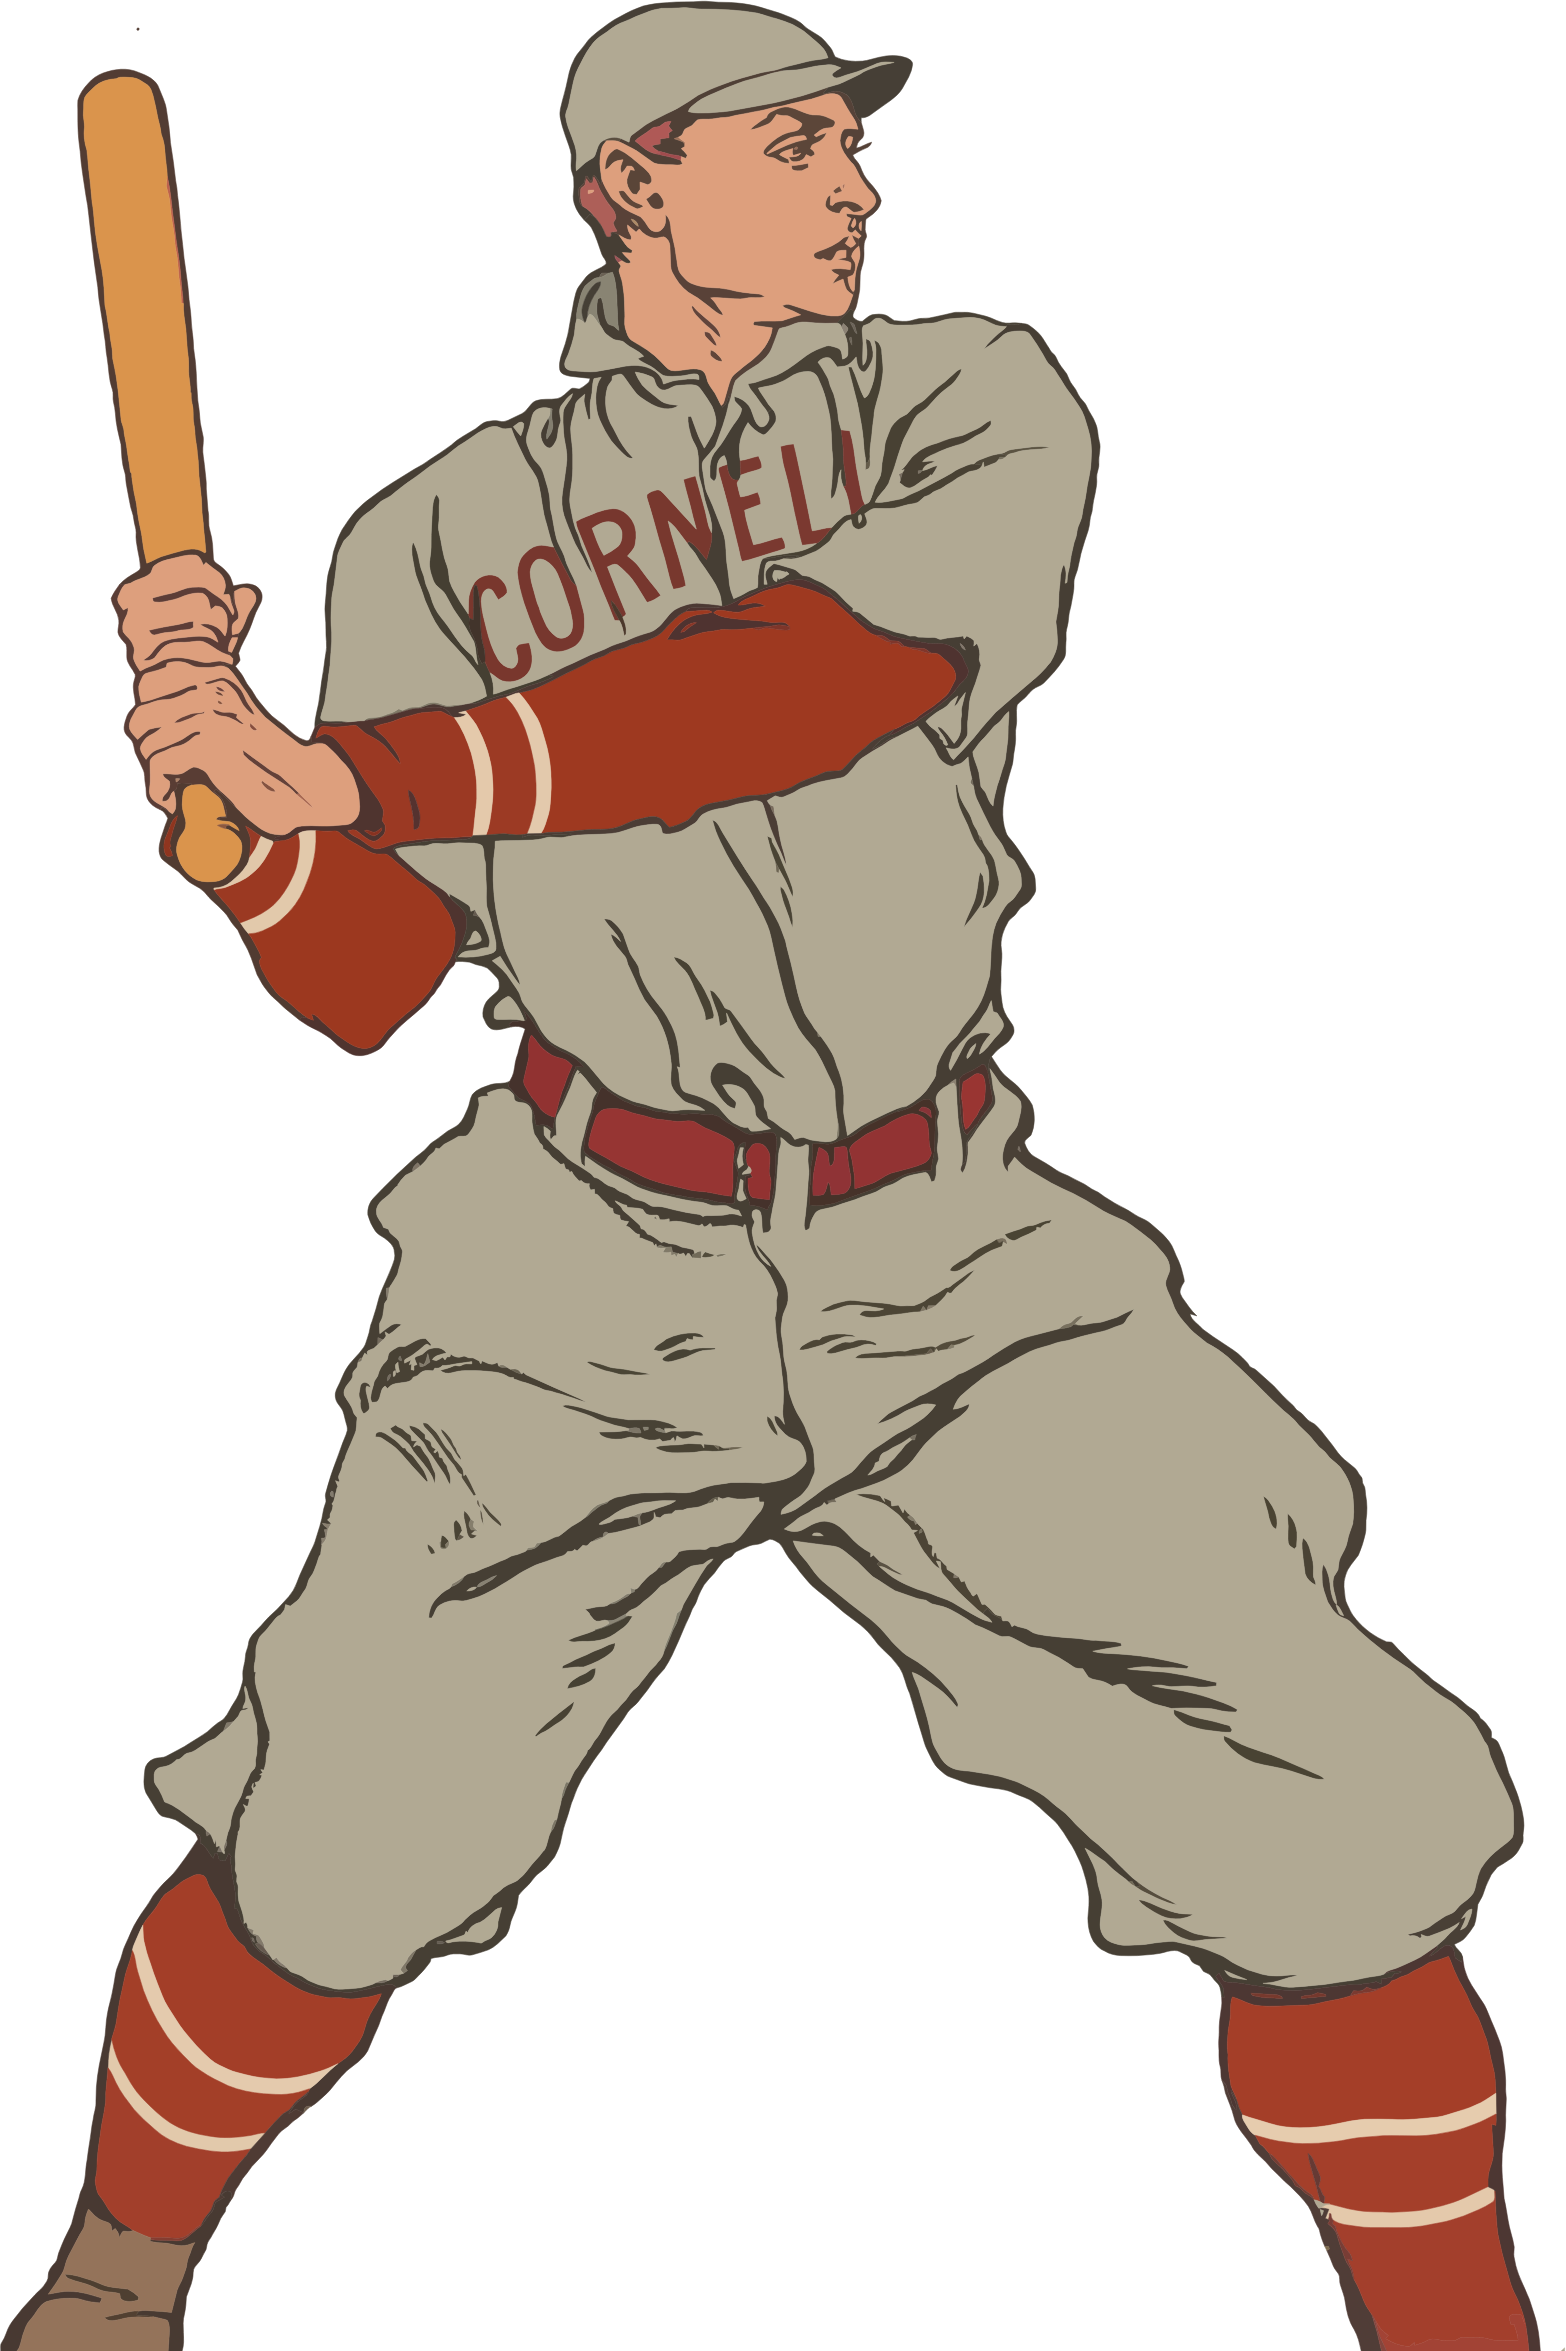 Baseball player throwing a ball clipart banner transparent download Clipart - Vintage Baseball Player banner transparent download